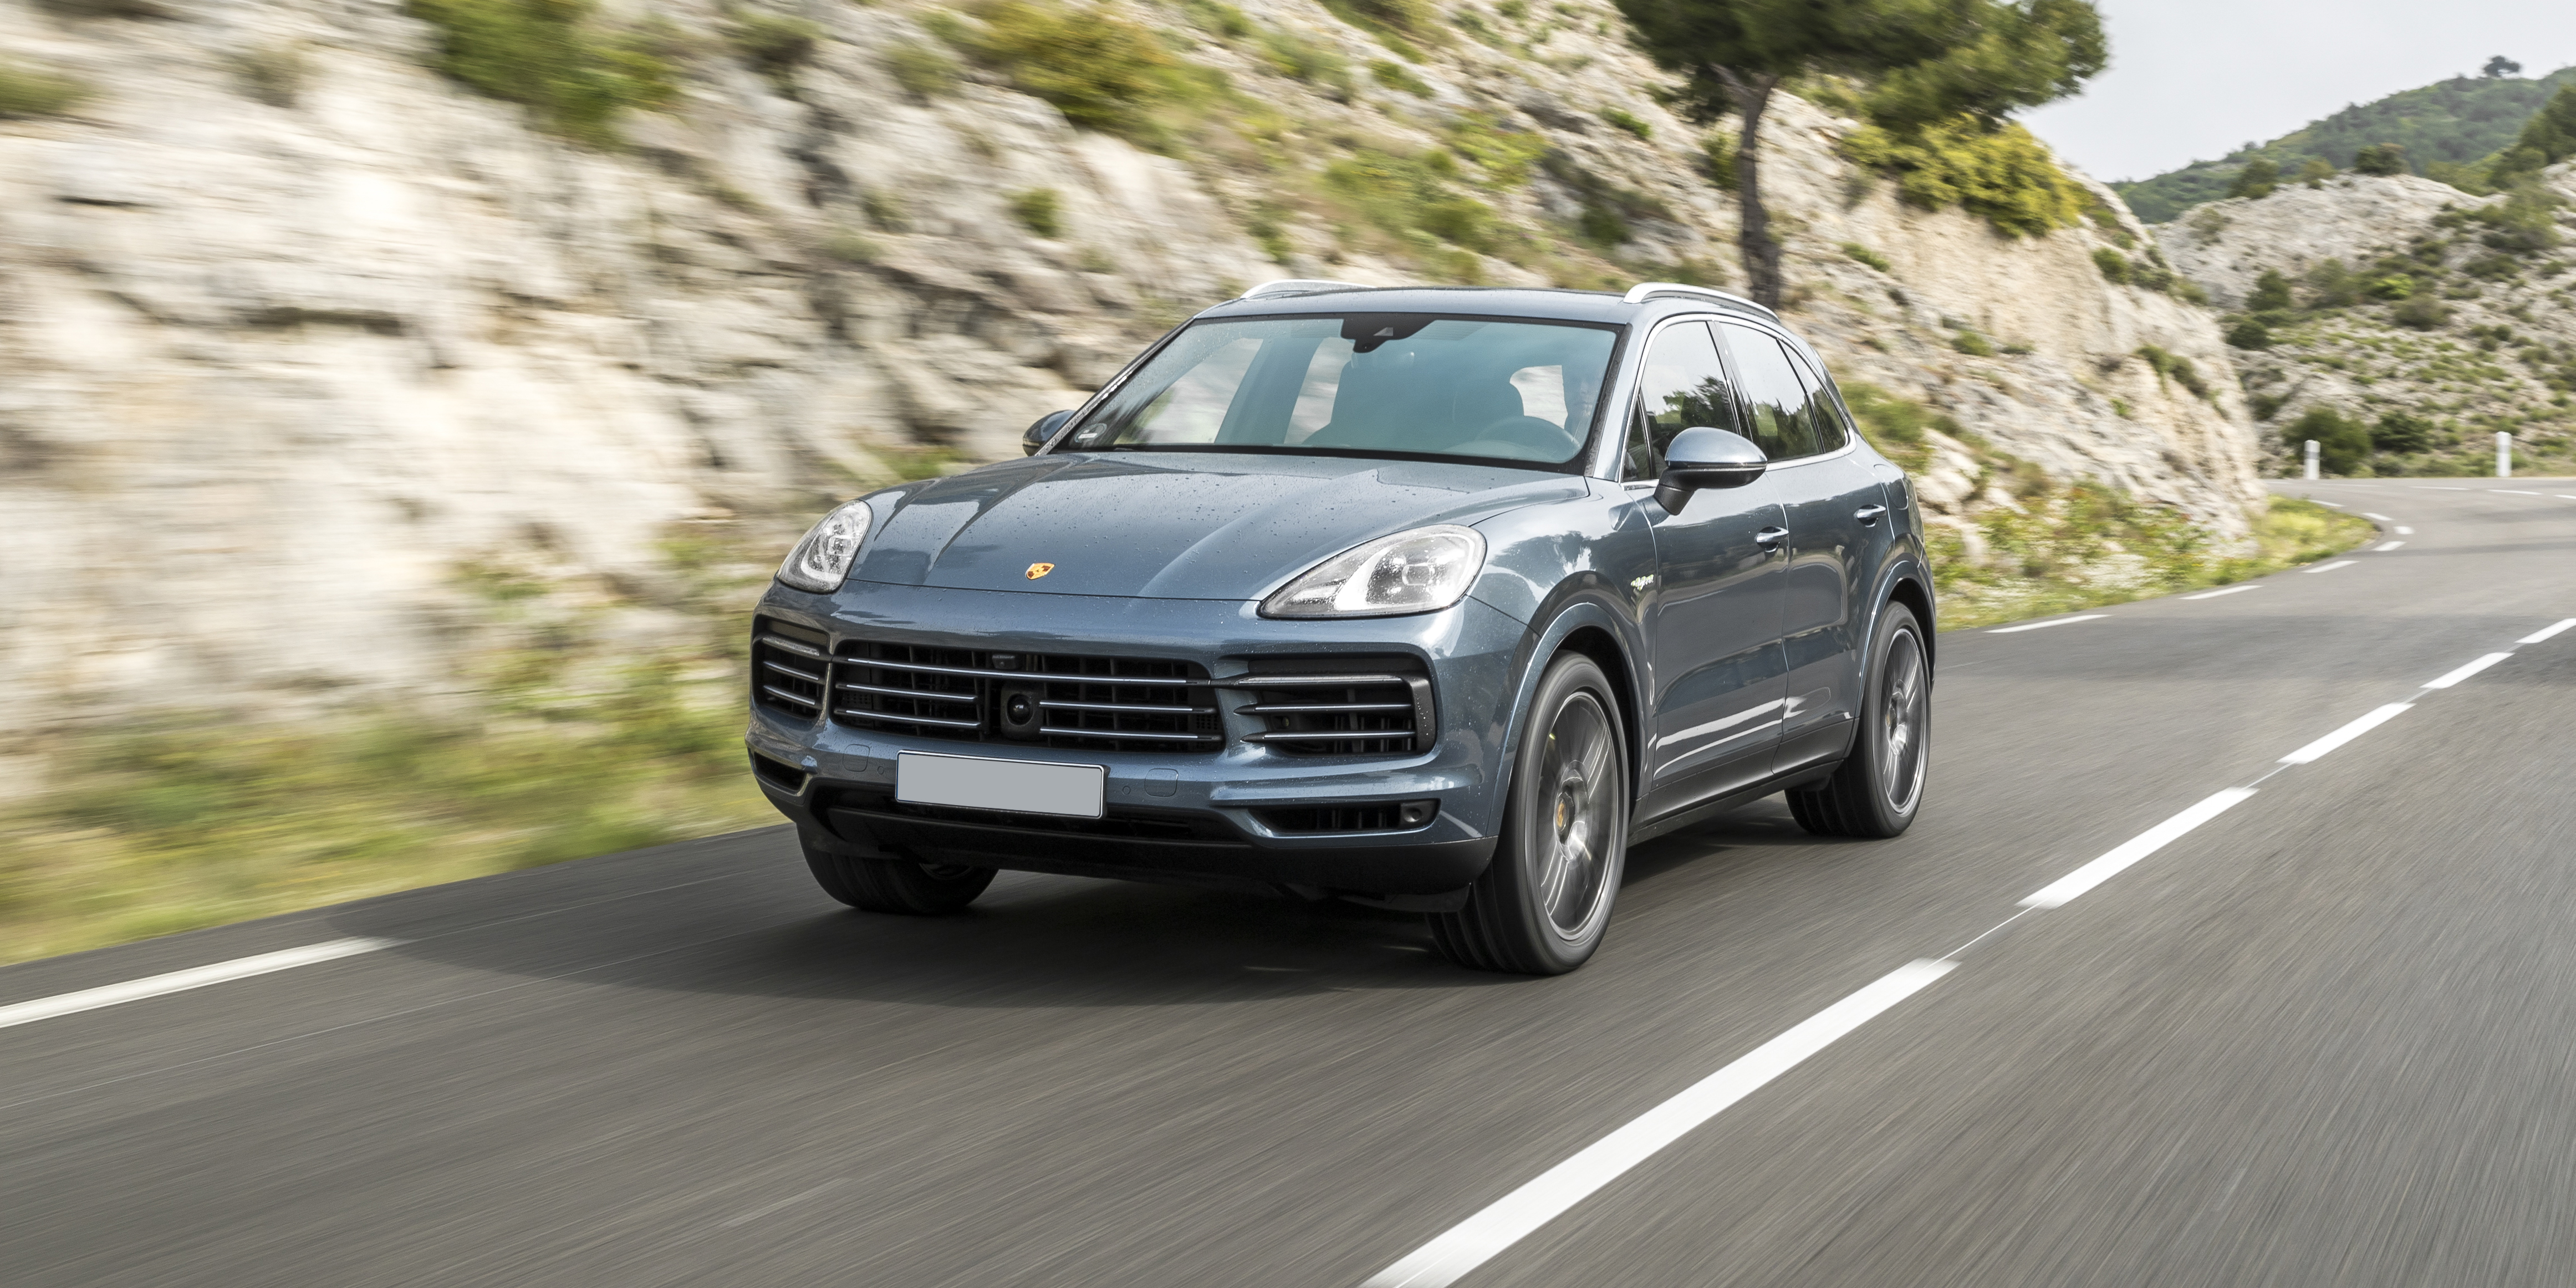 New Porsche Cayenne Review | carwow